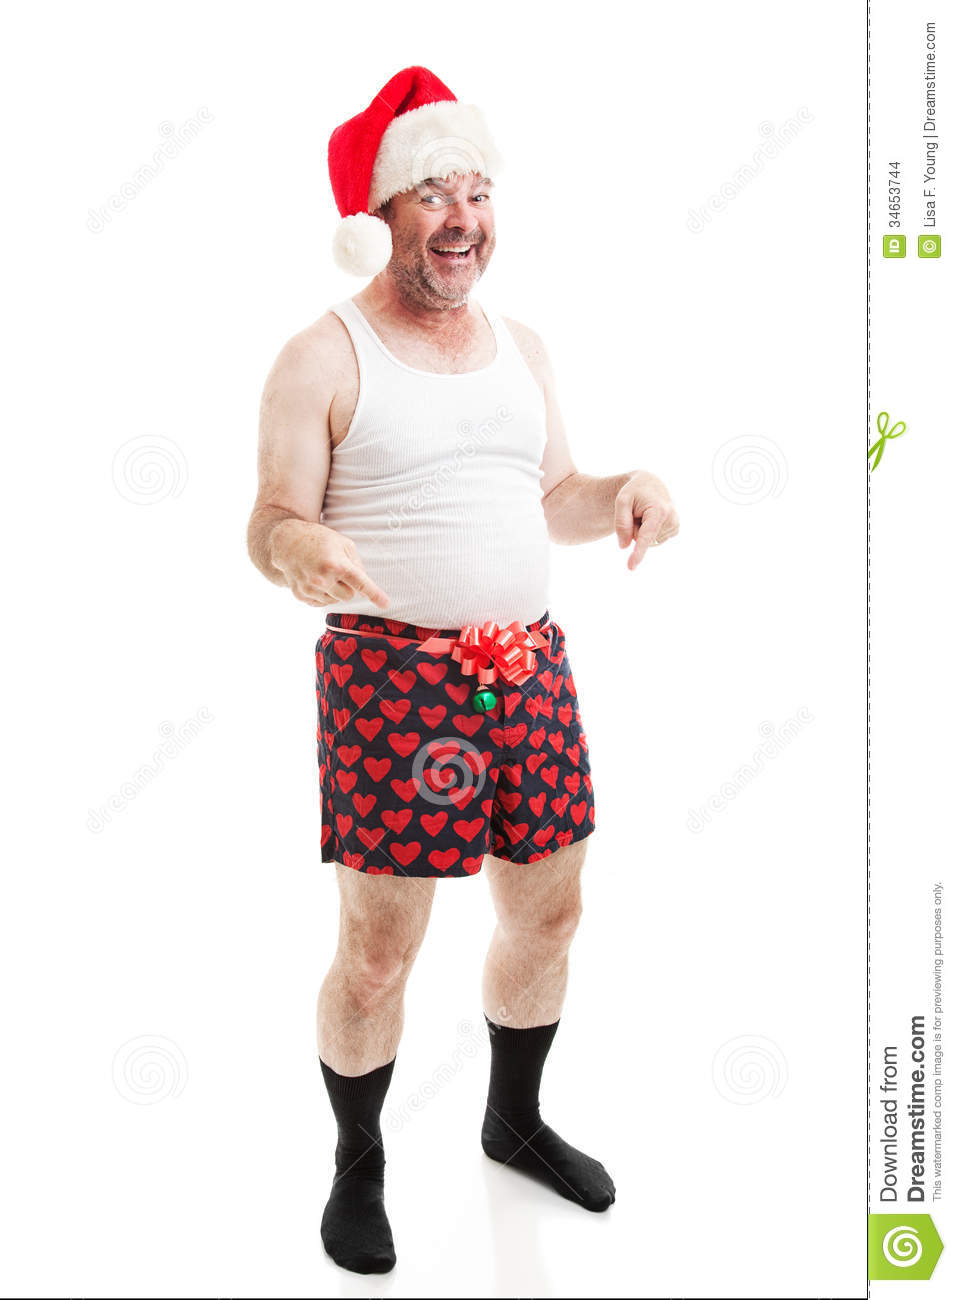 Grungy Looking Christmas Guy - Full Body Isolated Stock Images ...